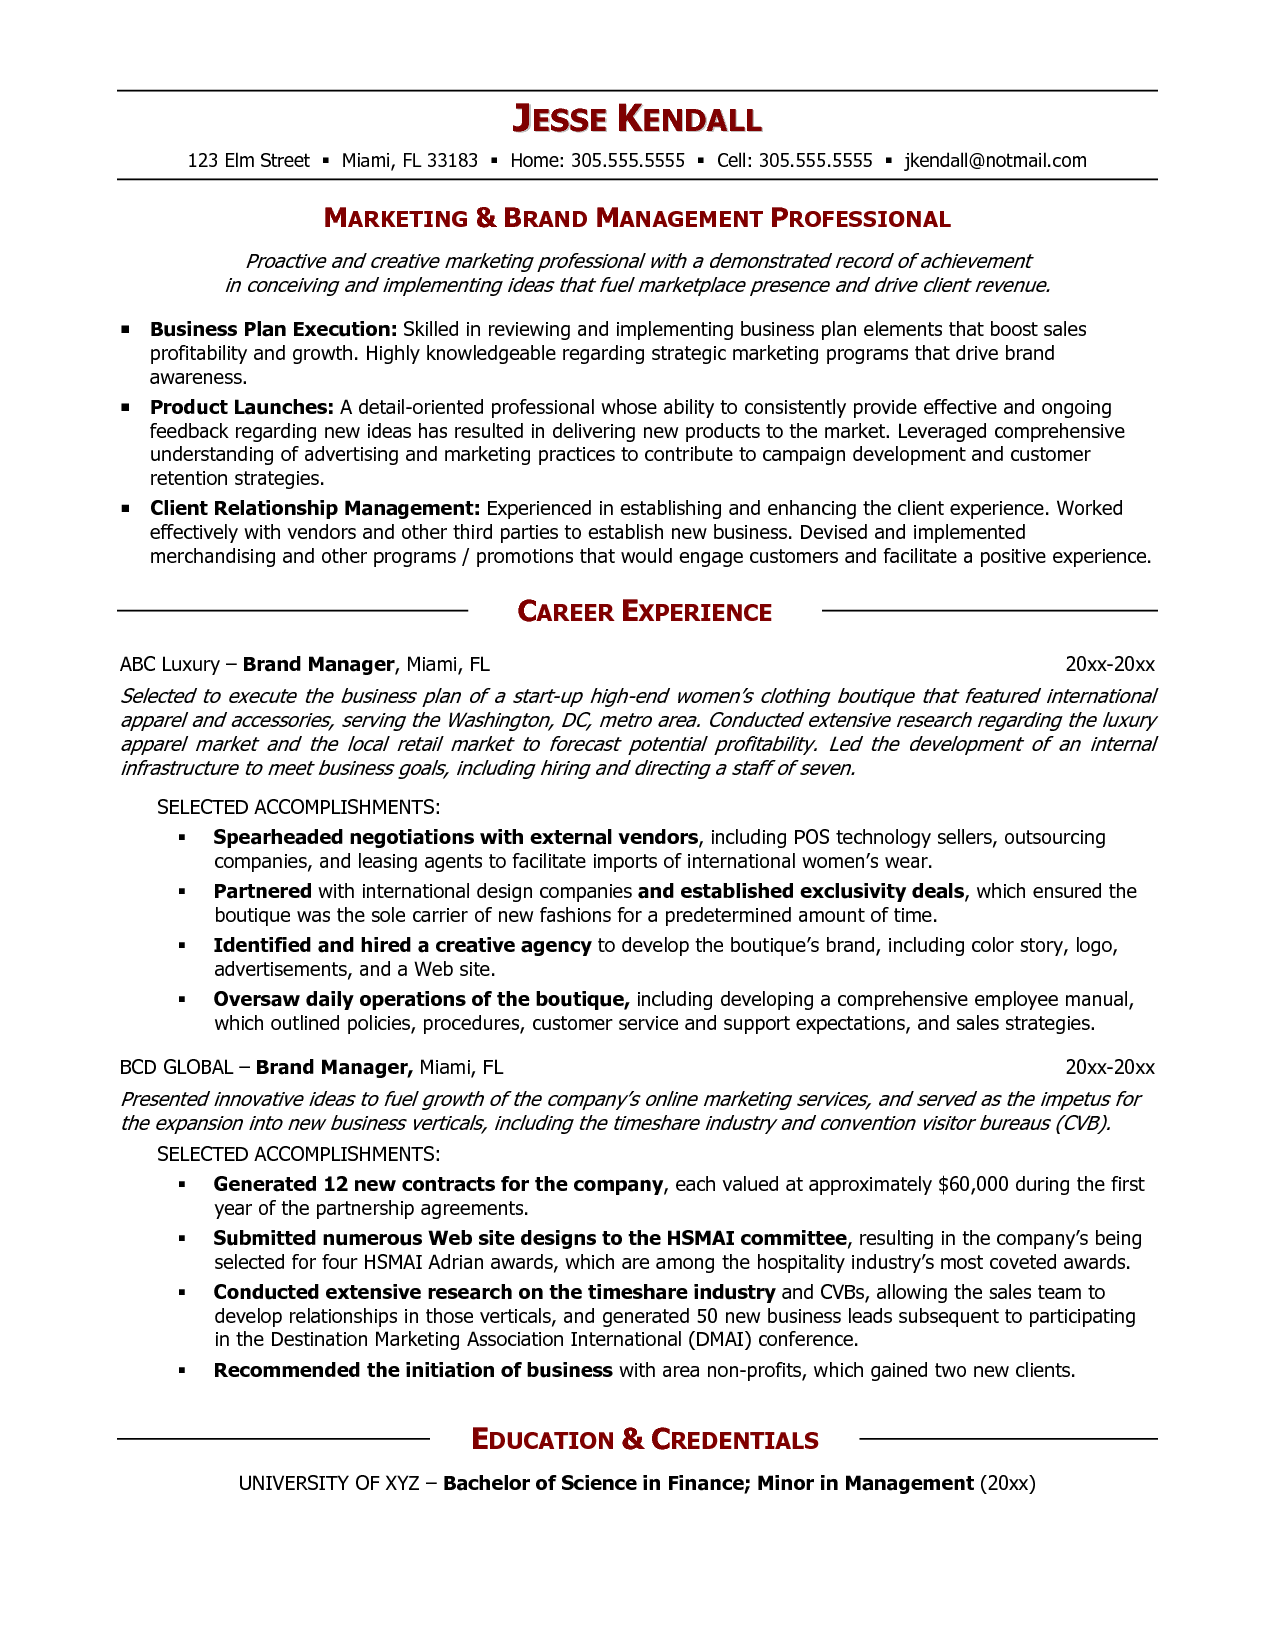 Management Resume Examples Extraordinary Senior Logistic Management Resume  Brand Manager Resume Example